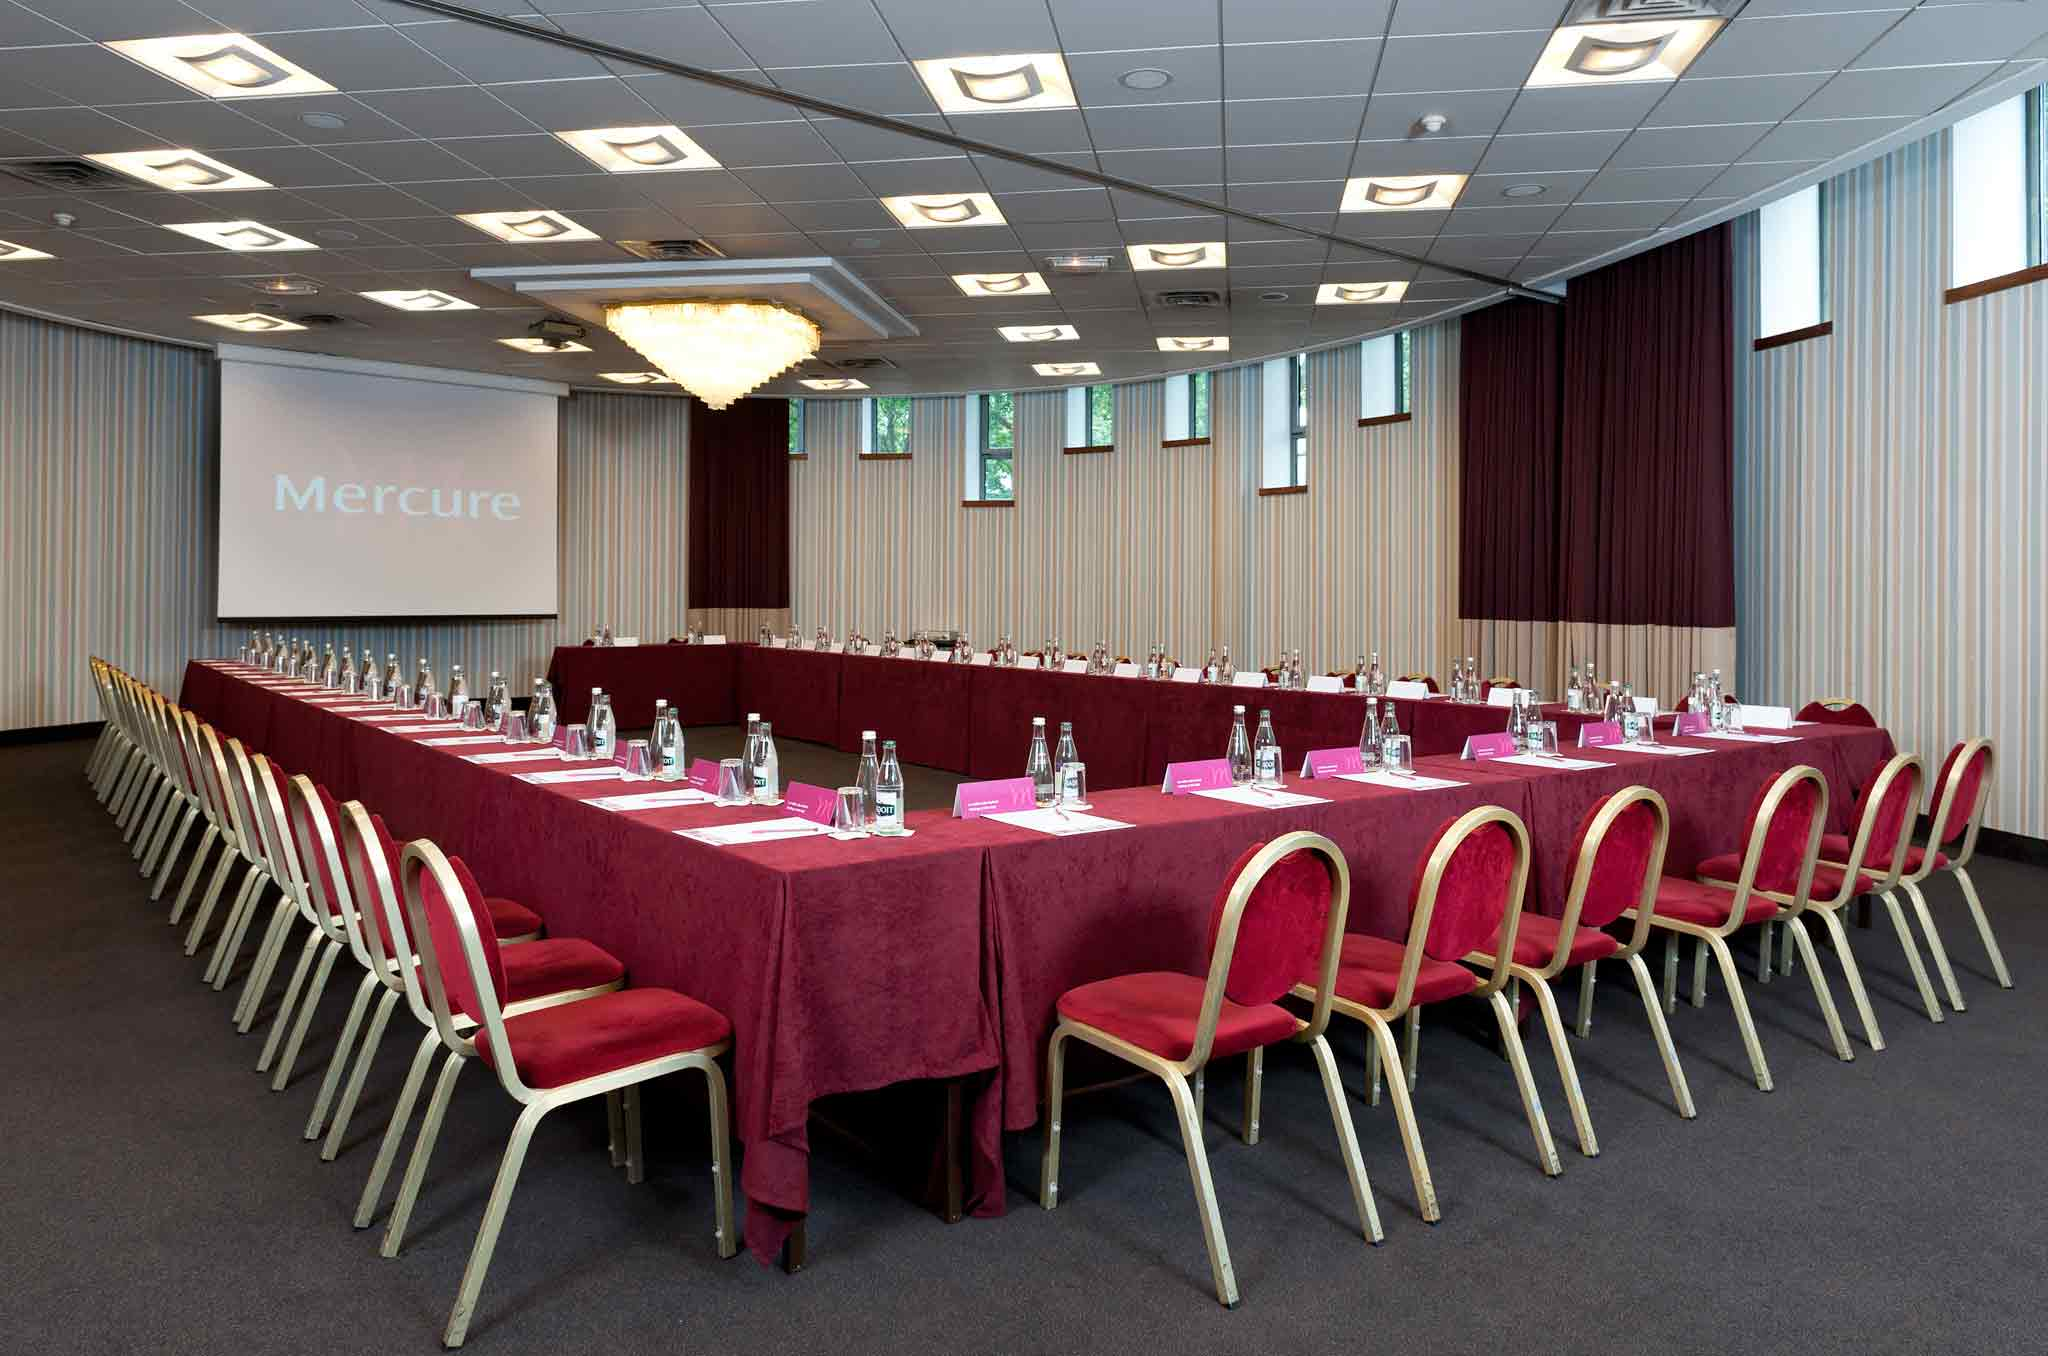 Mercure Paris La Villette Tagungsraum